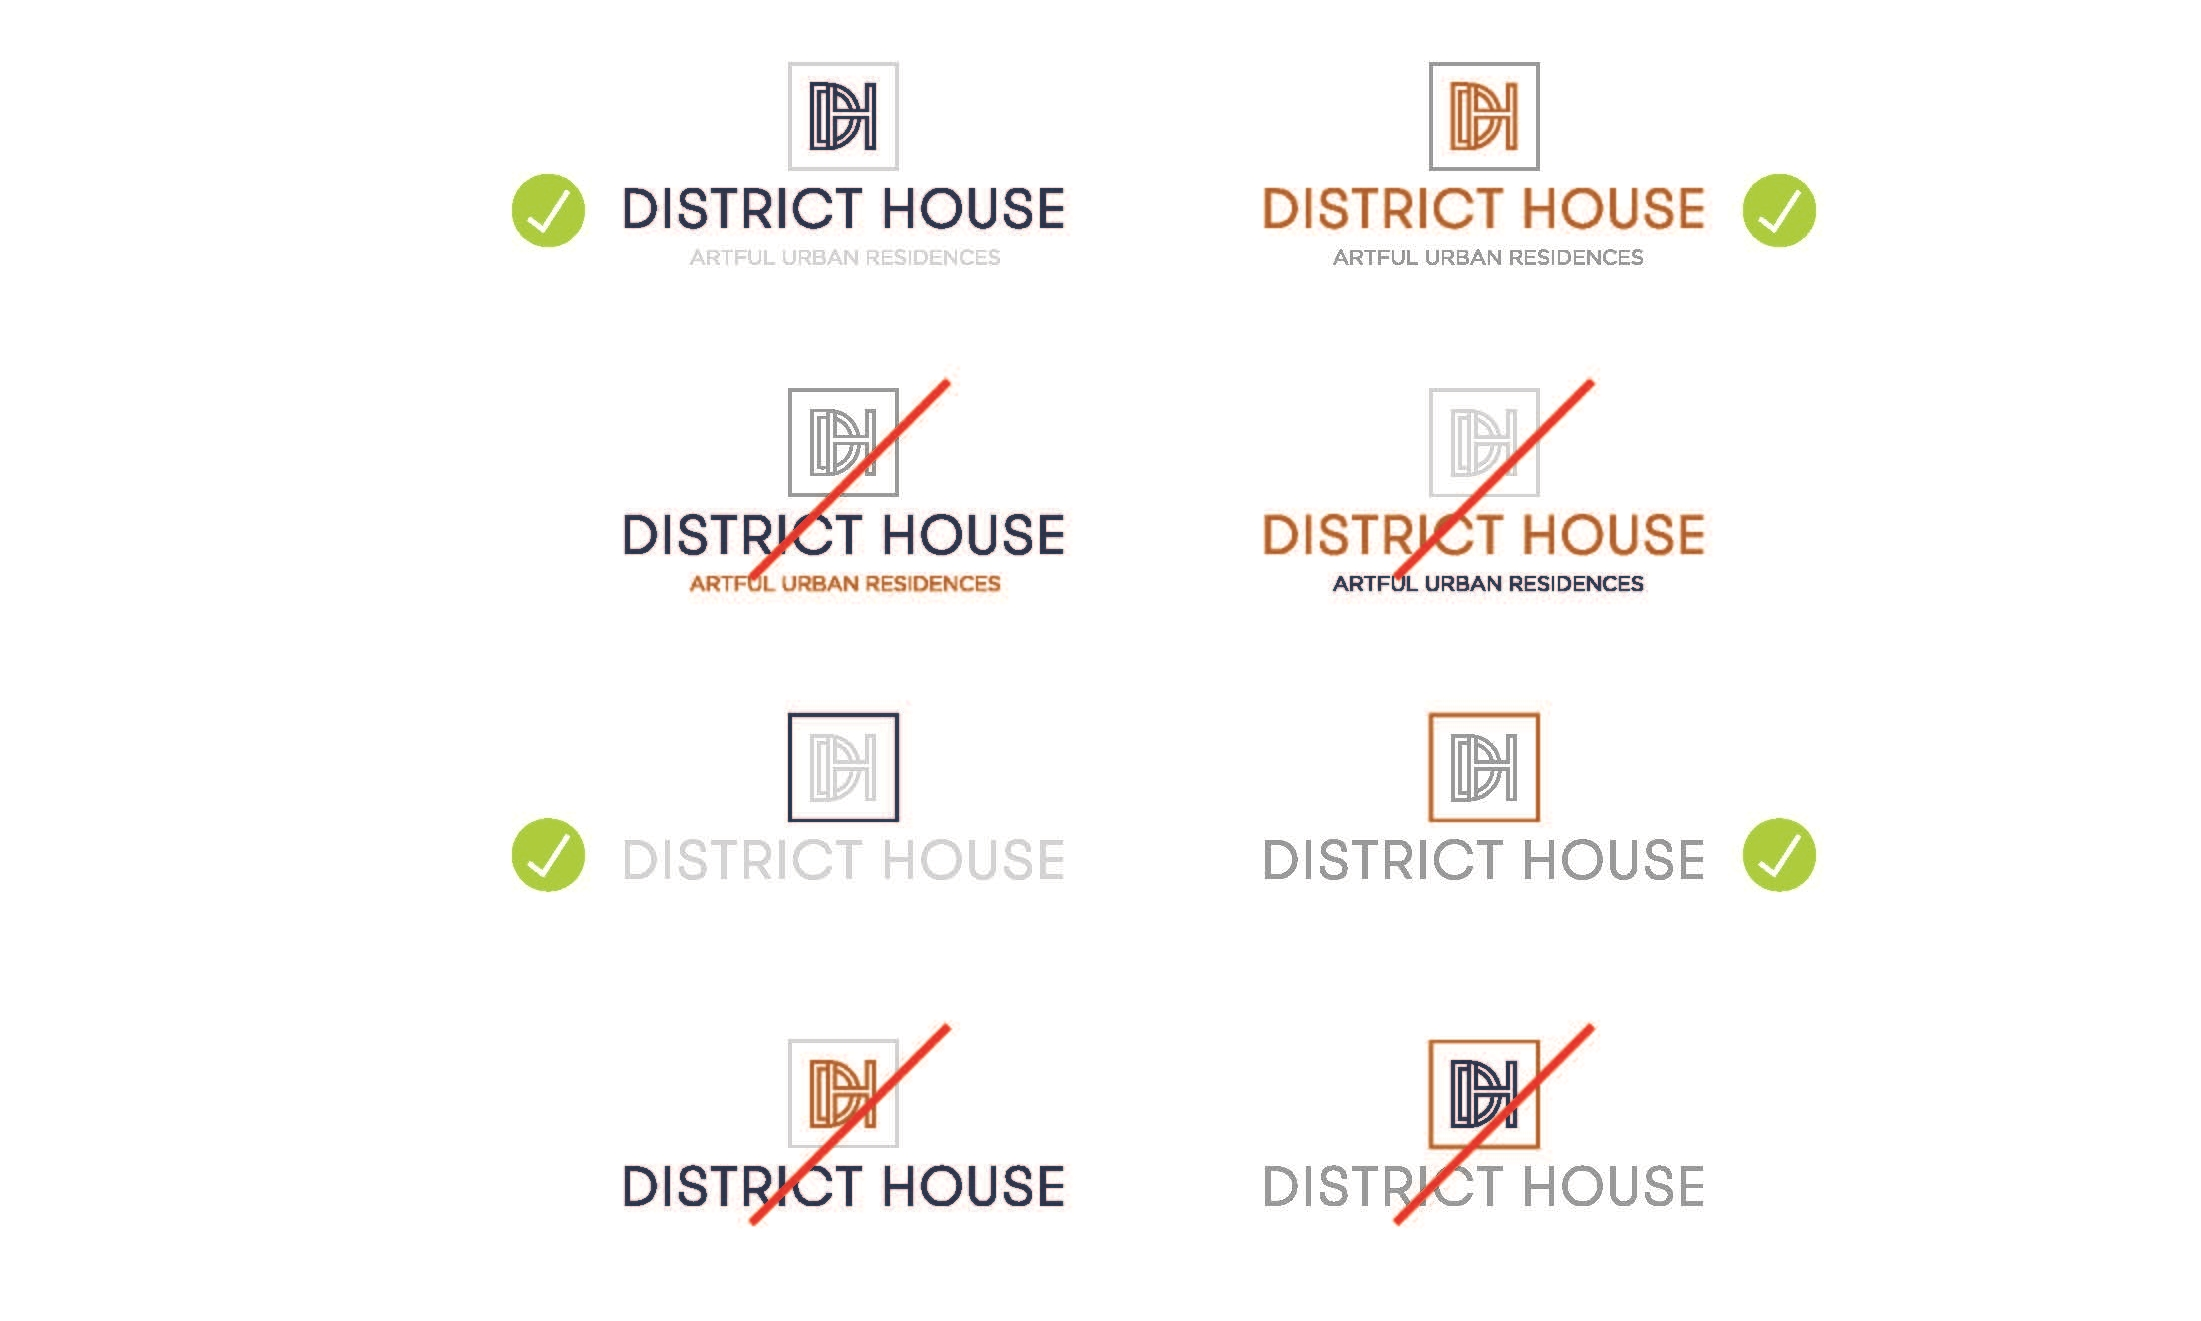 District House_Identity_Guide_031716_Page_14.jpg